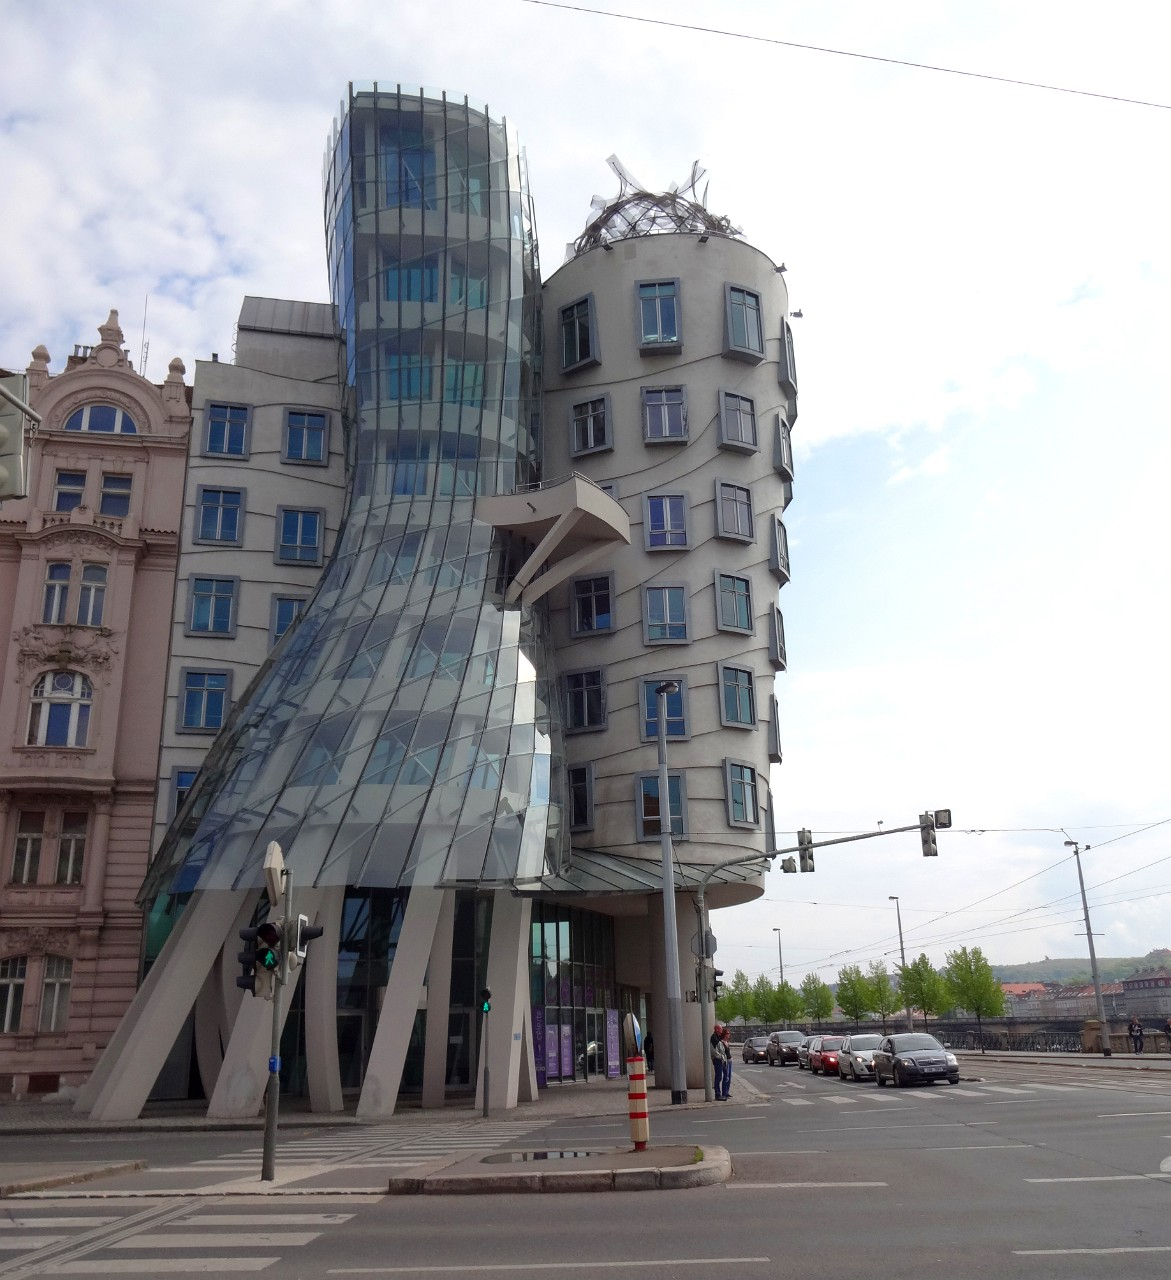 Fred and Ginger Dancing House